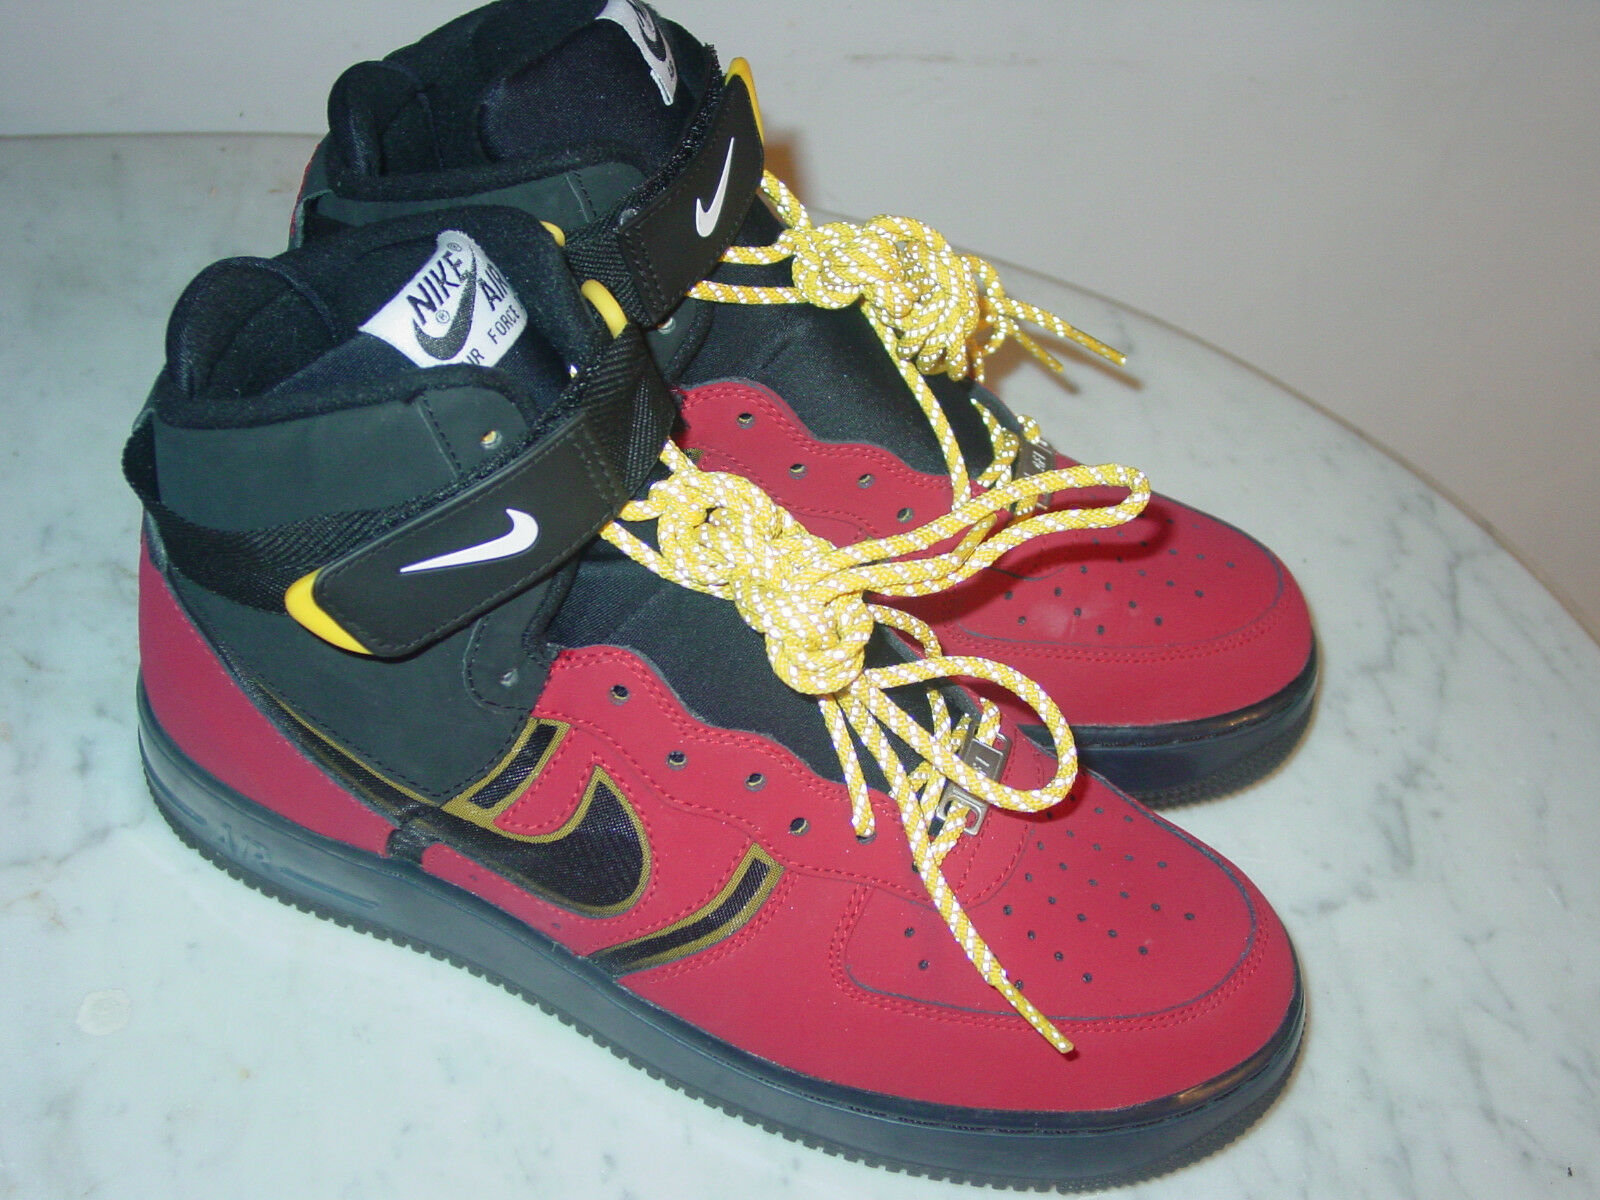 2013 Nike Air Force One Supreme Bakin University Red Black High shoes  Size 9.5